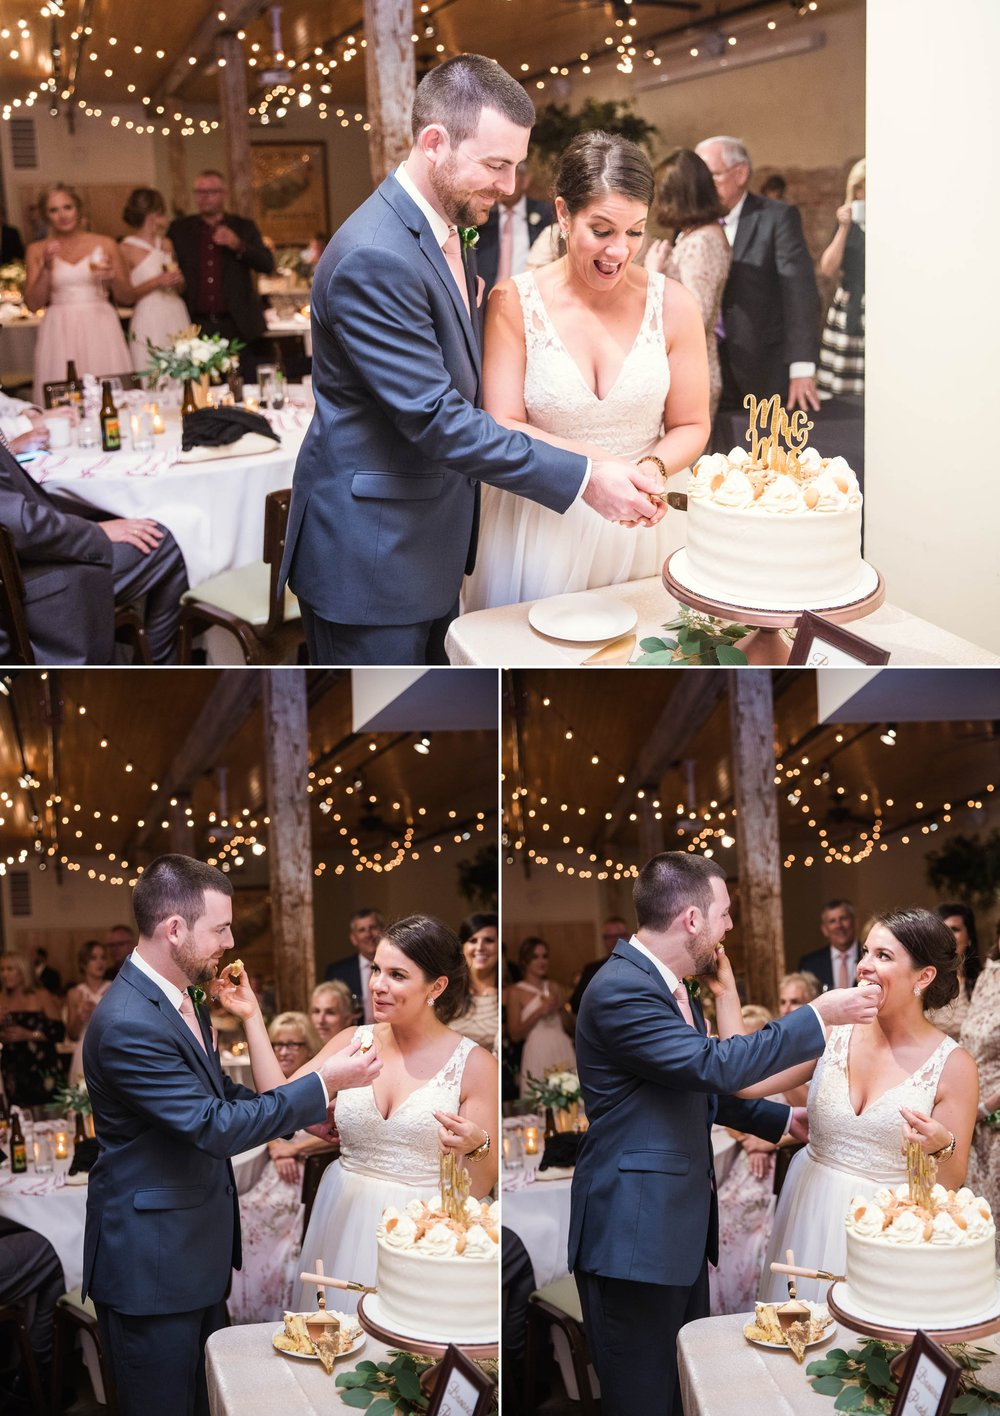 Cutting of the cake - in an industrial downtown venue - Clare + Wallace - The Jiddy Space - Raleigh North Carolina Wedding Photographer